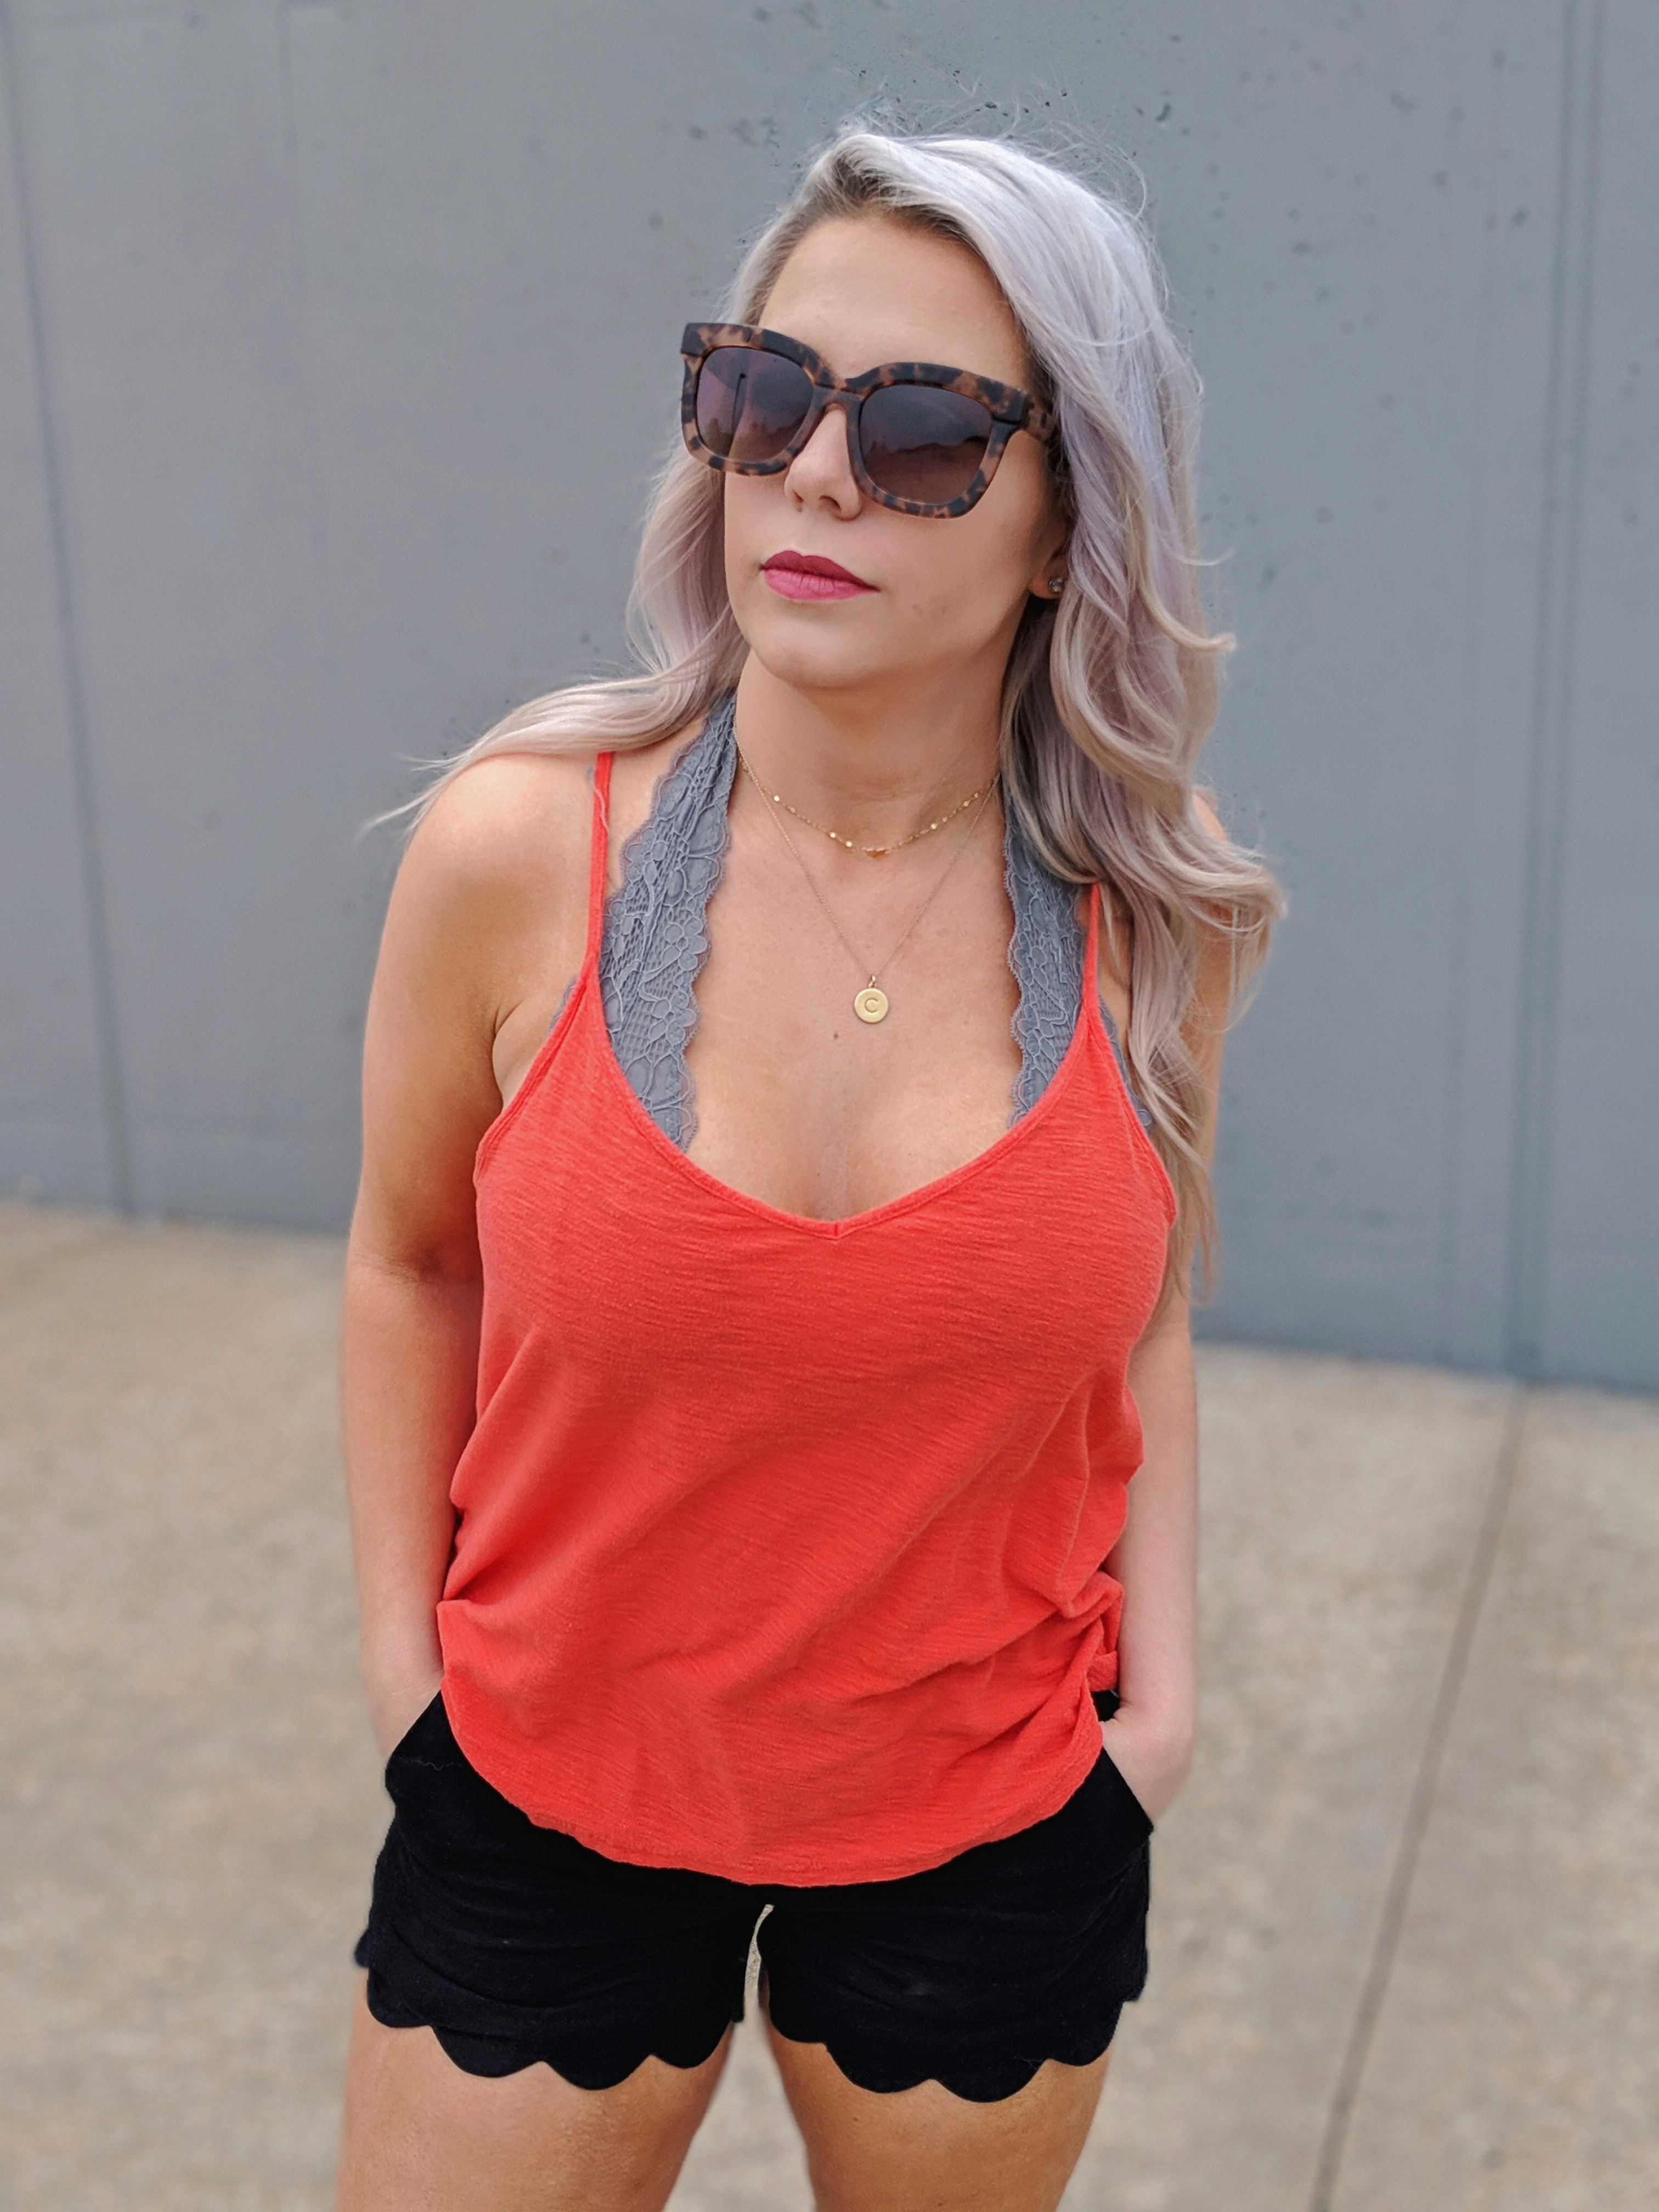 Halter Bralette Outfit Ideas: Halter bralette outfits perfect for all seasons! Fashion blogger Tricia Nibarger of COVET by tricia showcases halter bralette outfit ideas for spring, summer, fall, and winter. Cute halter bralette outfits, what to wear with a halter bralette. #liketkit #bralette #womensfashion